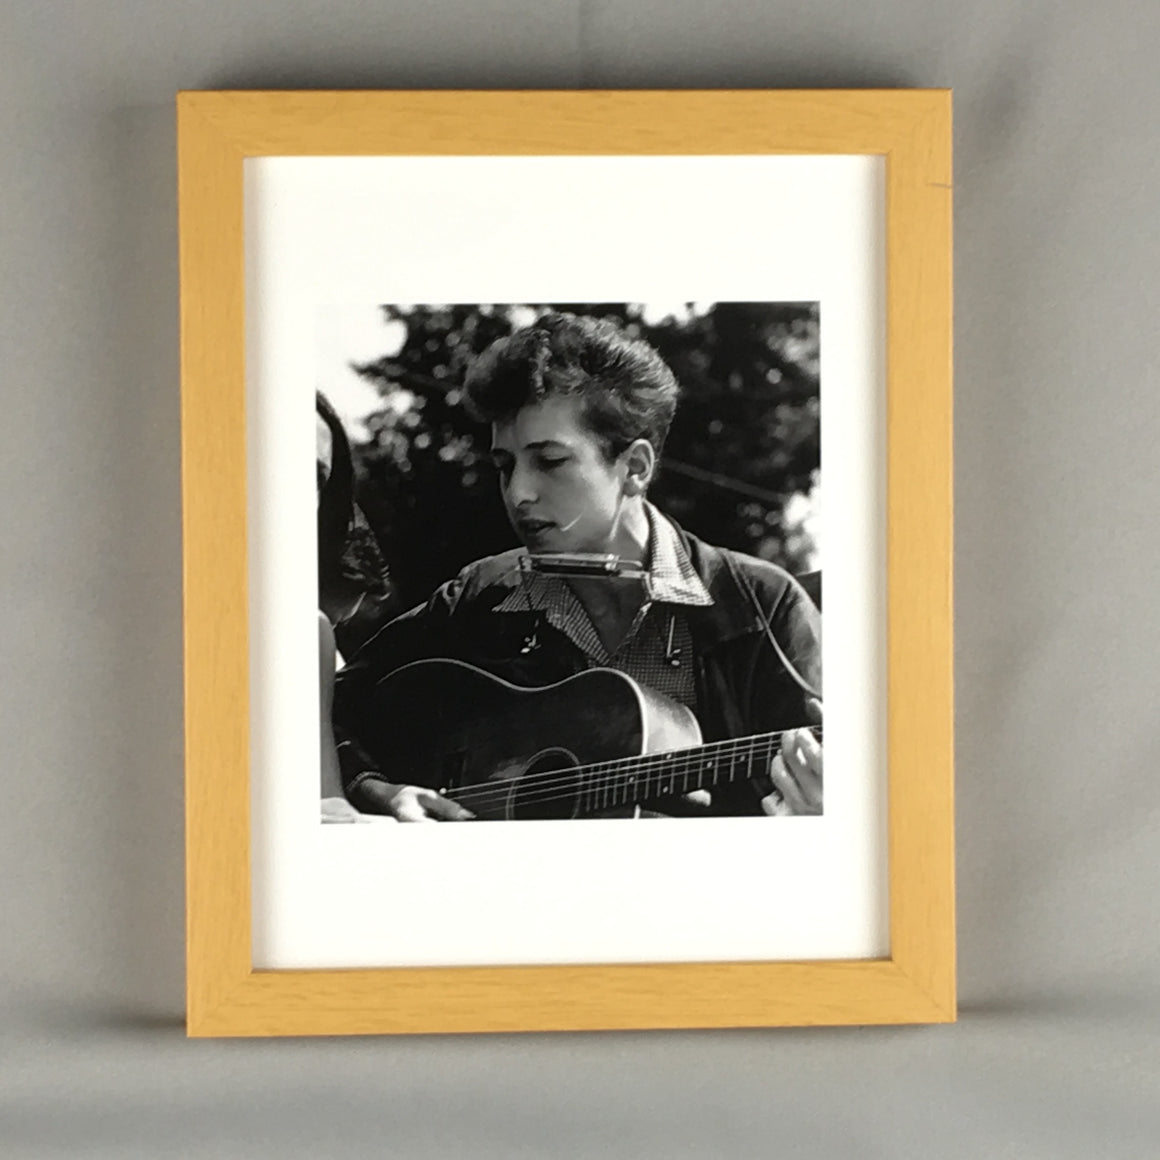 "Young Bob Dylan Framed Art Print - 10"" X 12"" - Quality Wood Frame"